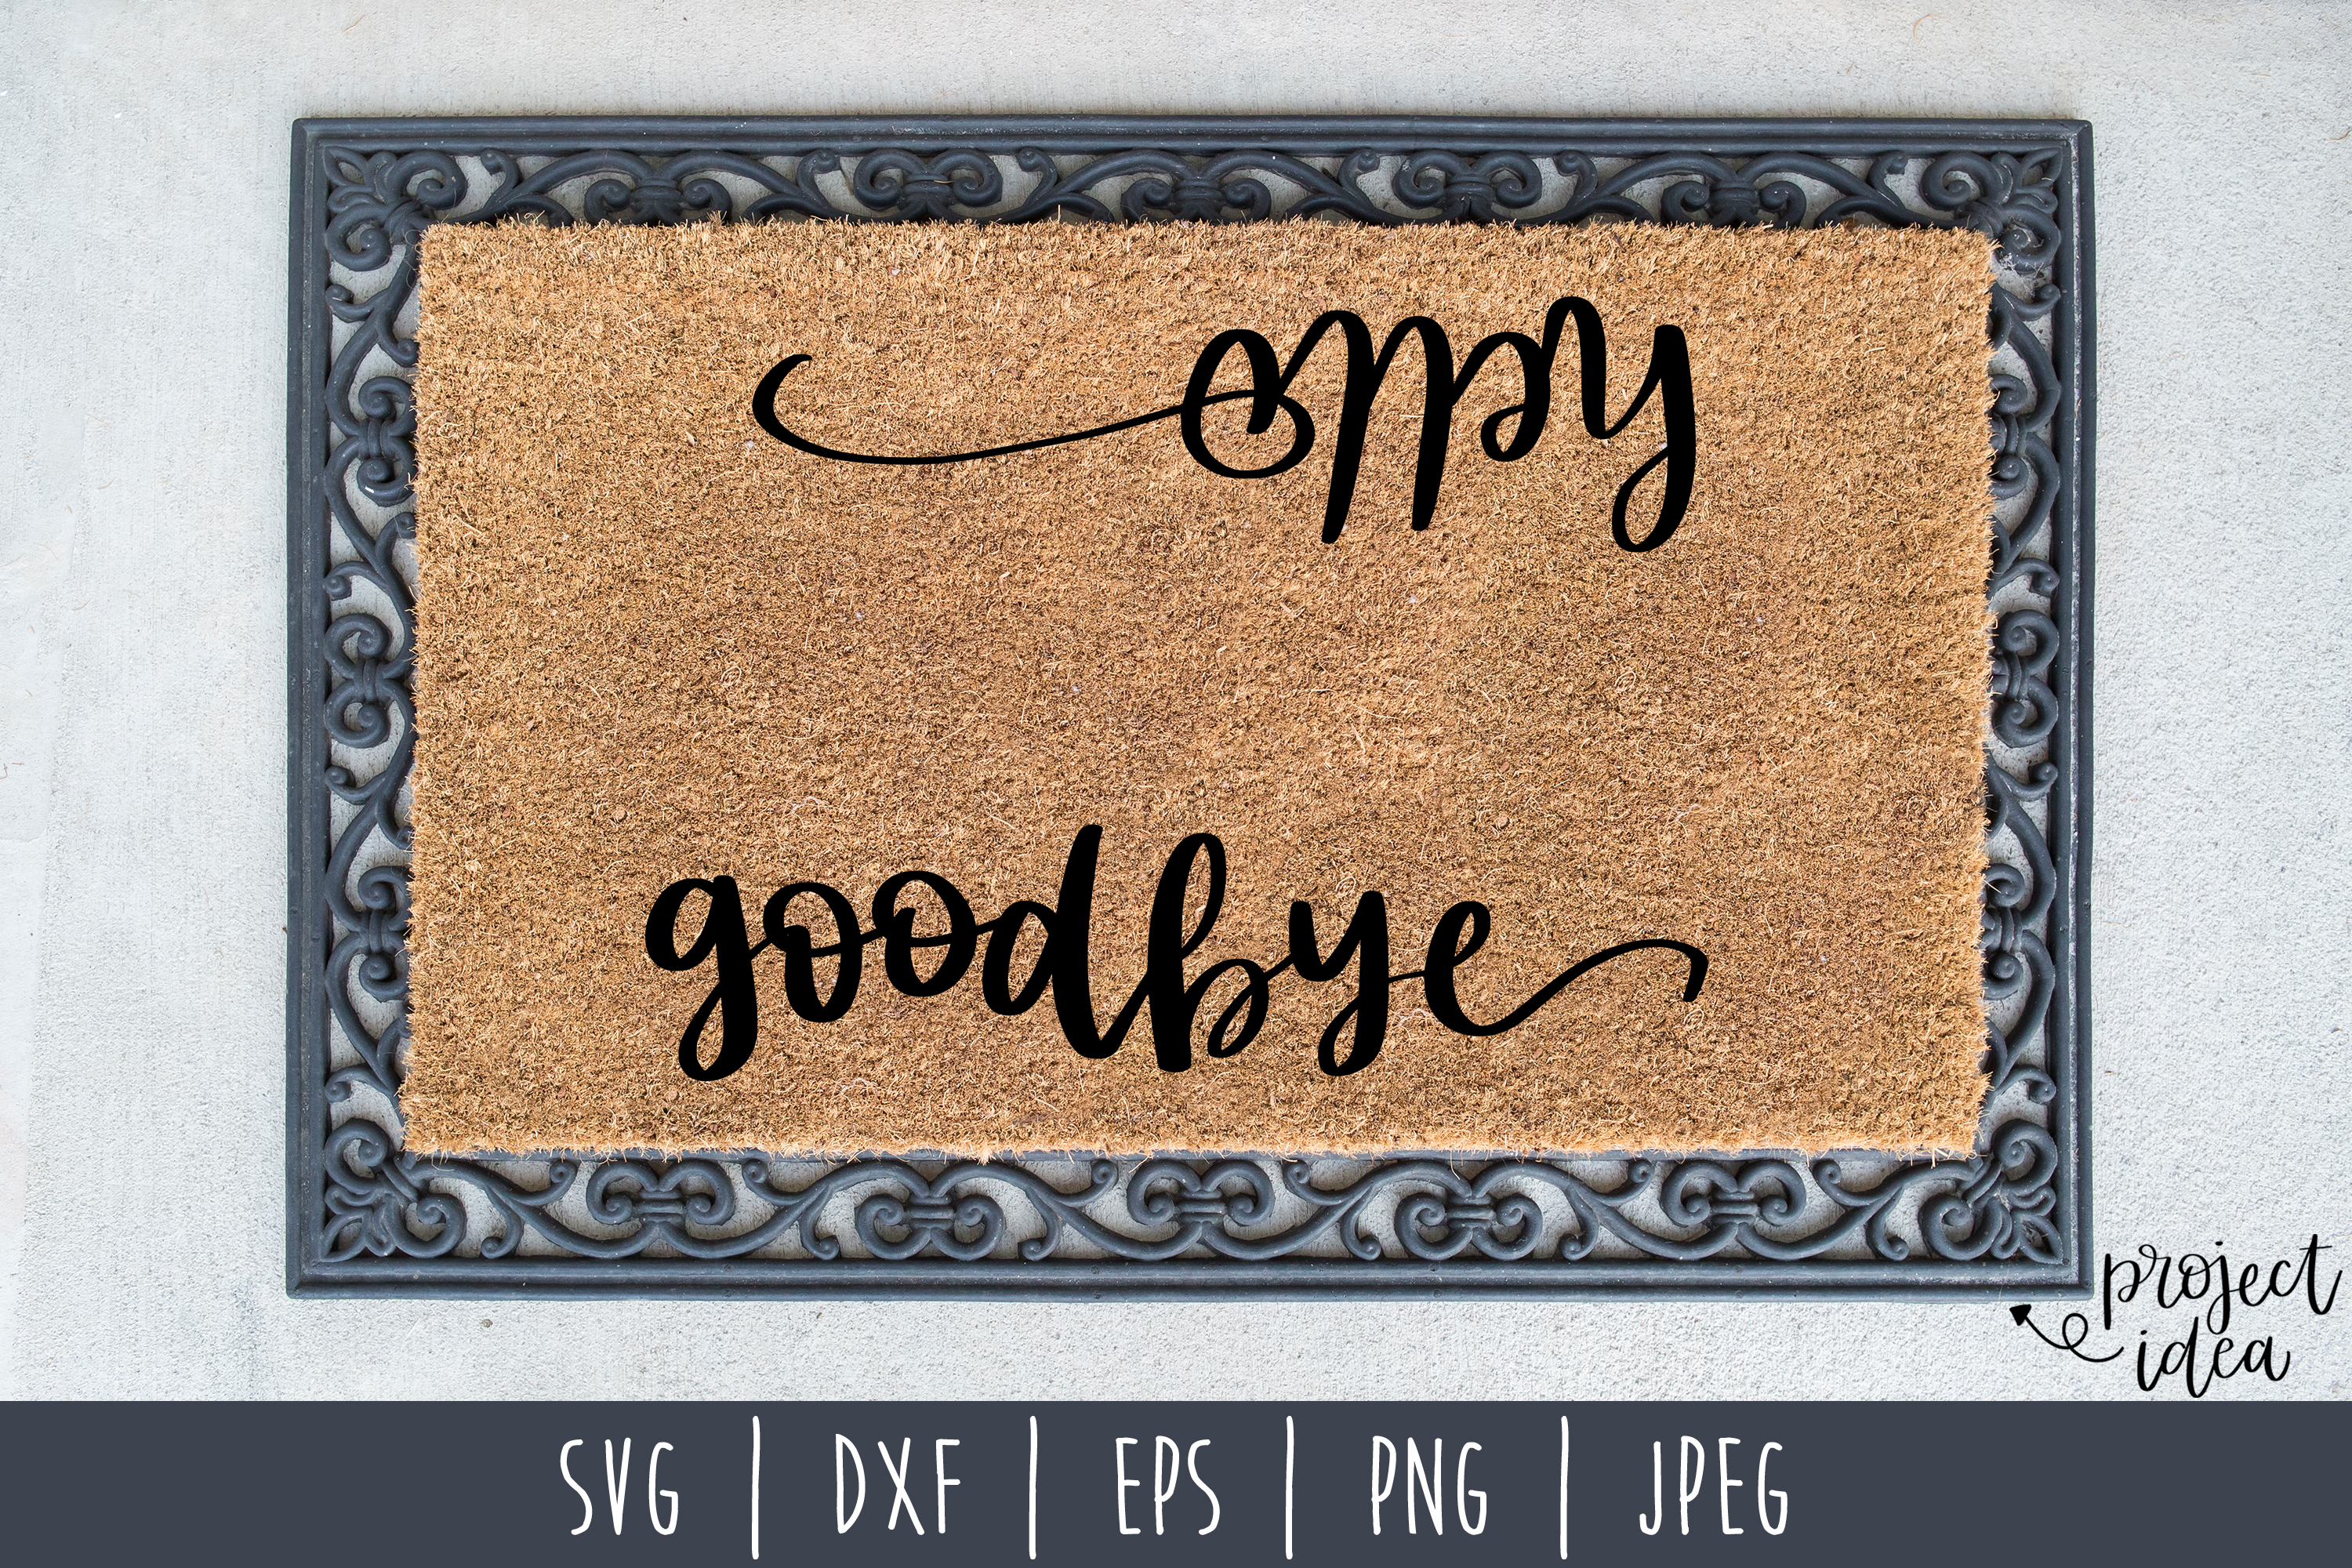 Hello Goodbye Doormat SVG, DXF, EPS, PNG JPEG example image 1